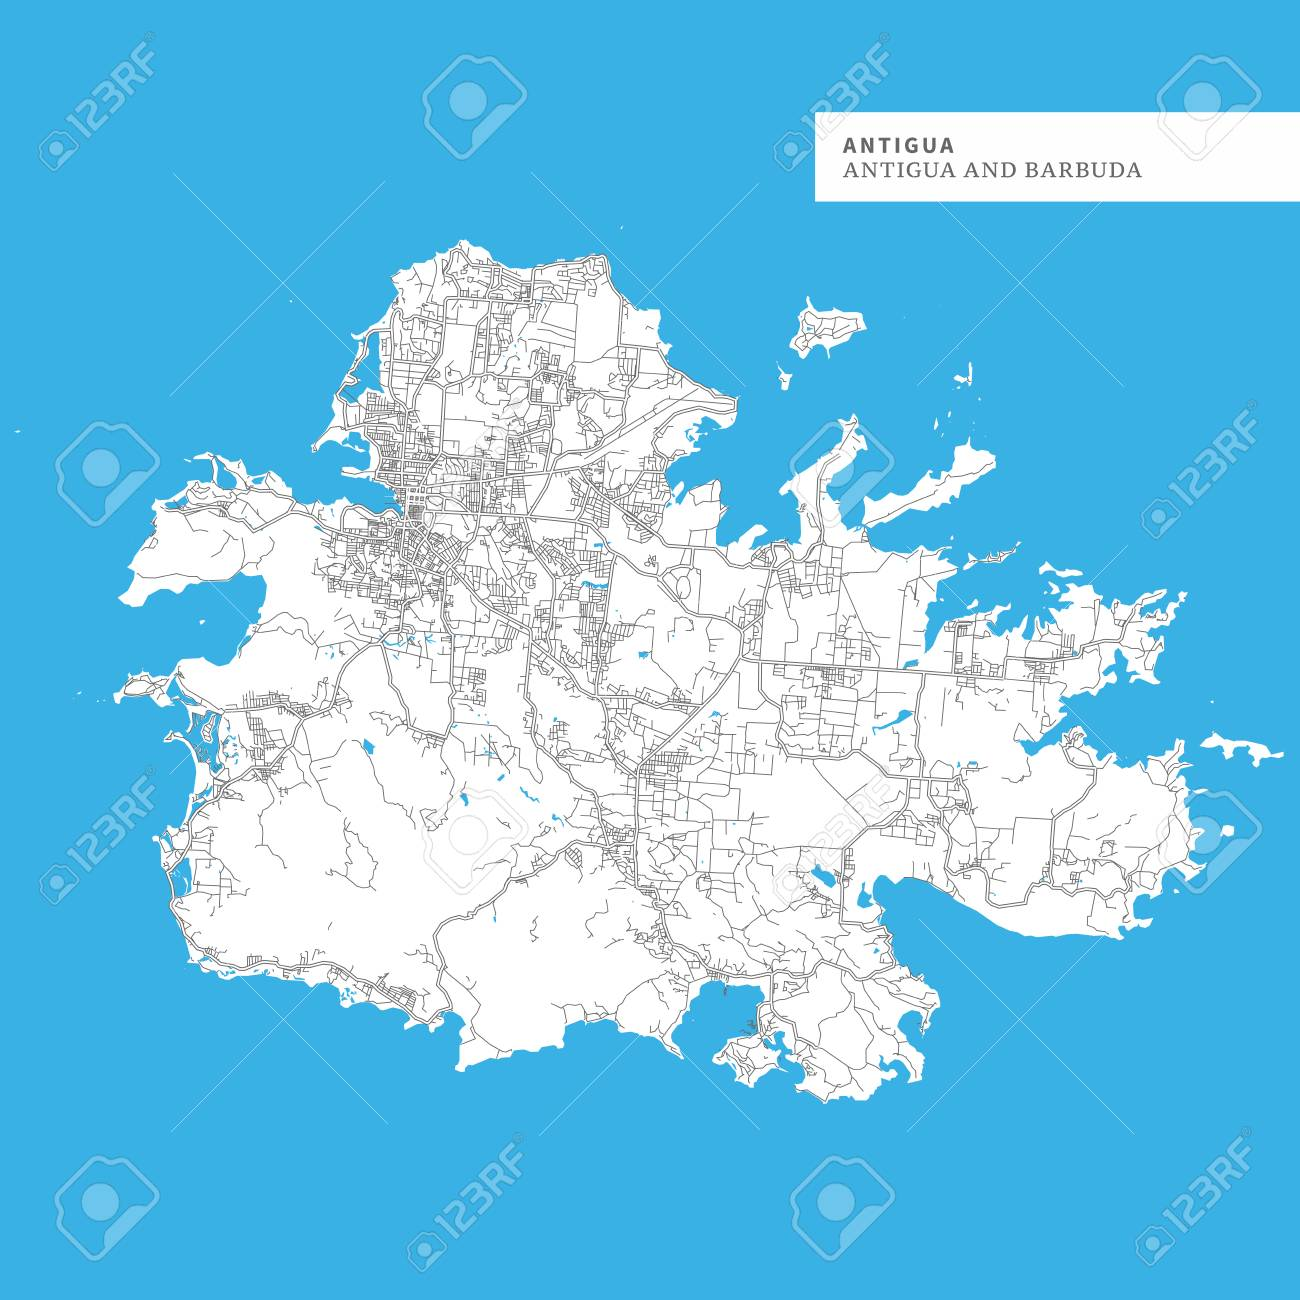 Map of Antigua Island, Antigua and Barbuda, contains geography.. Map Of Antigua on united states virgin islands, map of st. lucia, map of panama, saint kitts, antigua and barbuda, map of caribbean, saint lucia, map of tortola, map of guatemala, map of st maarten, map of aruba, map of barbuda, map of trinidad, map of jamaica, map of anguilla, turks and caicos islands, map of virgin islands, caribbean sea, map of guadeloupe, map of isla de roatan, map of west indies, map of barbados, saint thomas, map of dominica, map of st kitts, map of belize, british virgin islands,